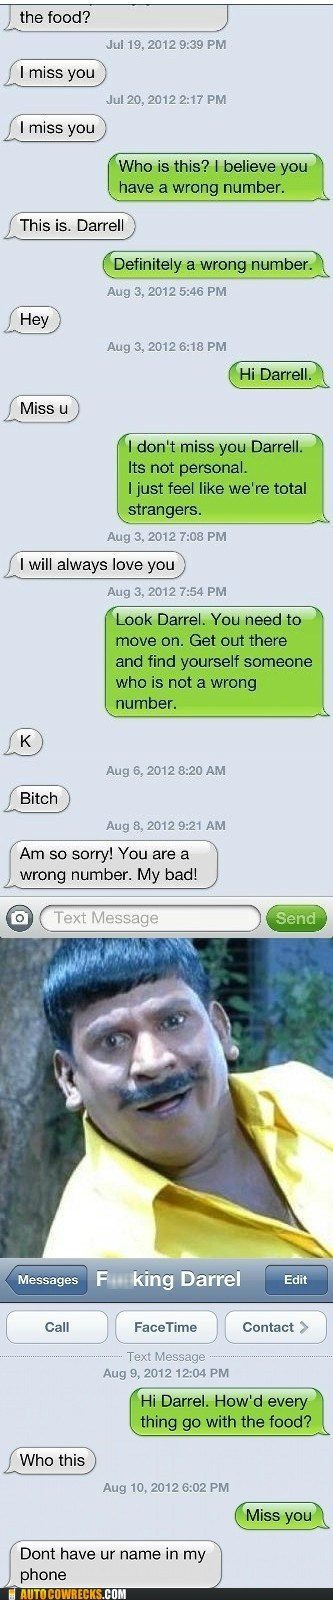 darrell,miss you,wrong number